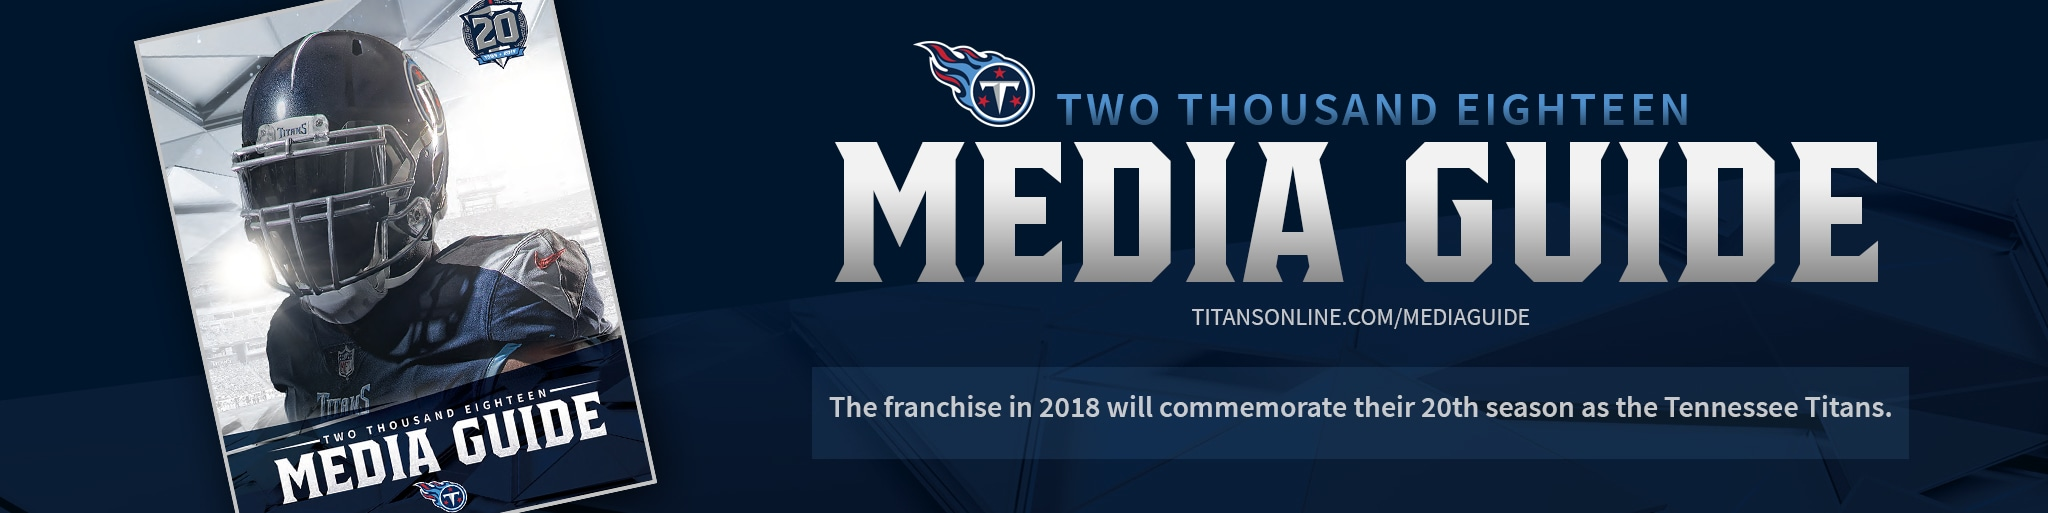 Tennessee Titans 2018 Media Guide